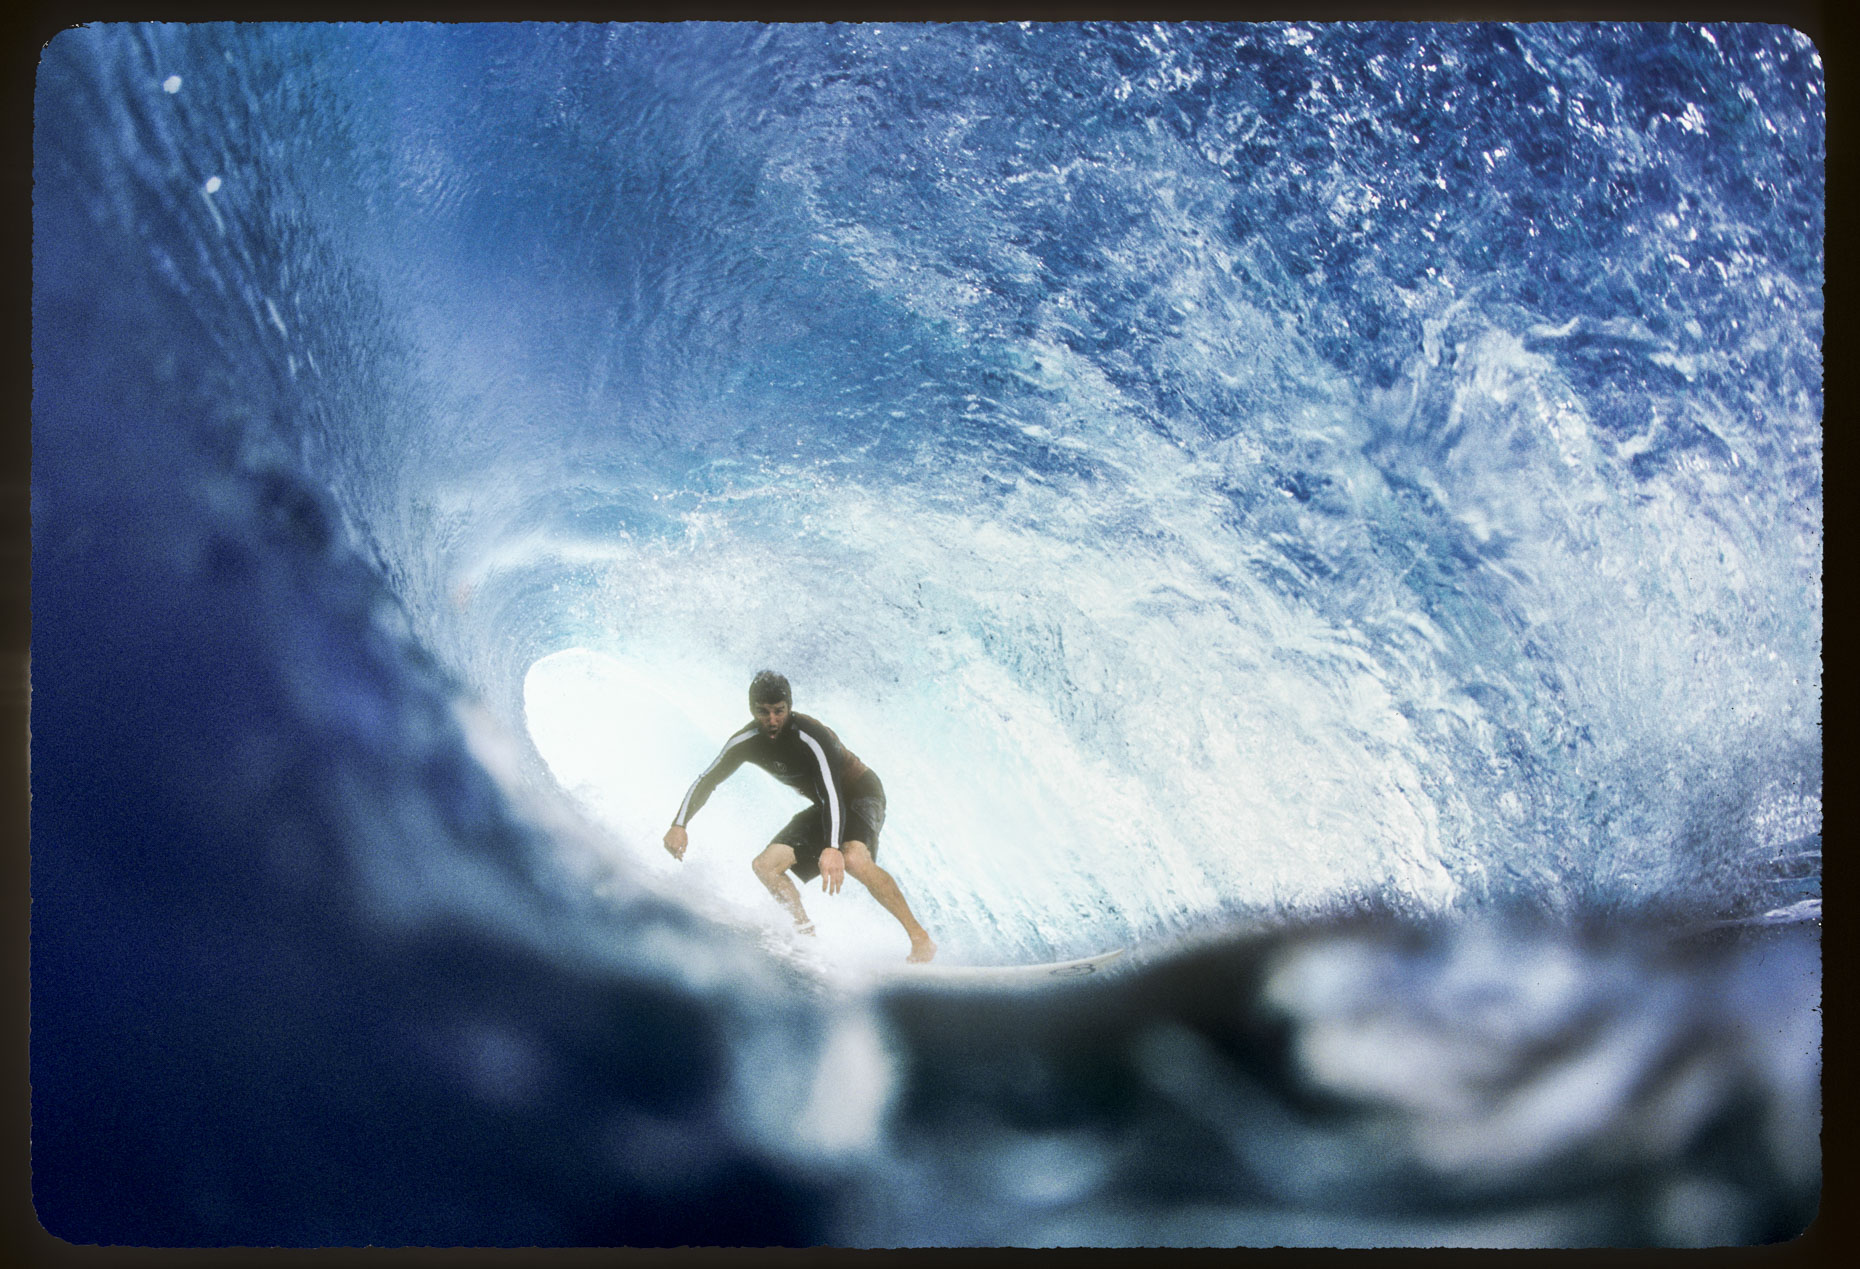 Unknown surfer - Backdoor